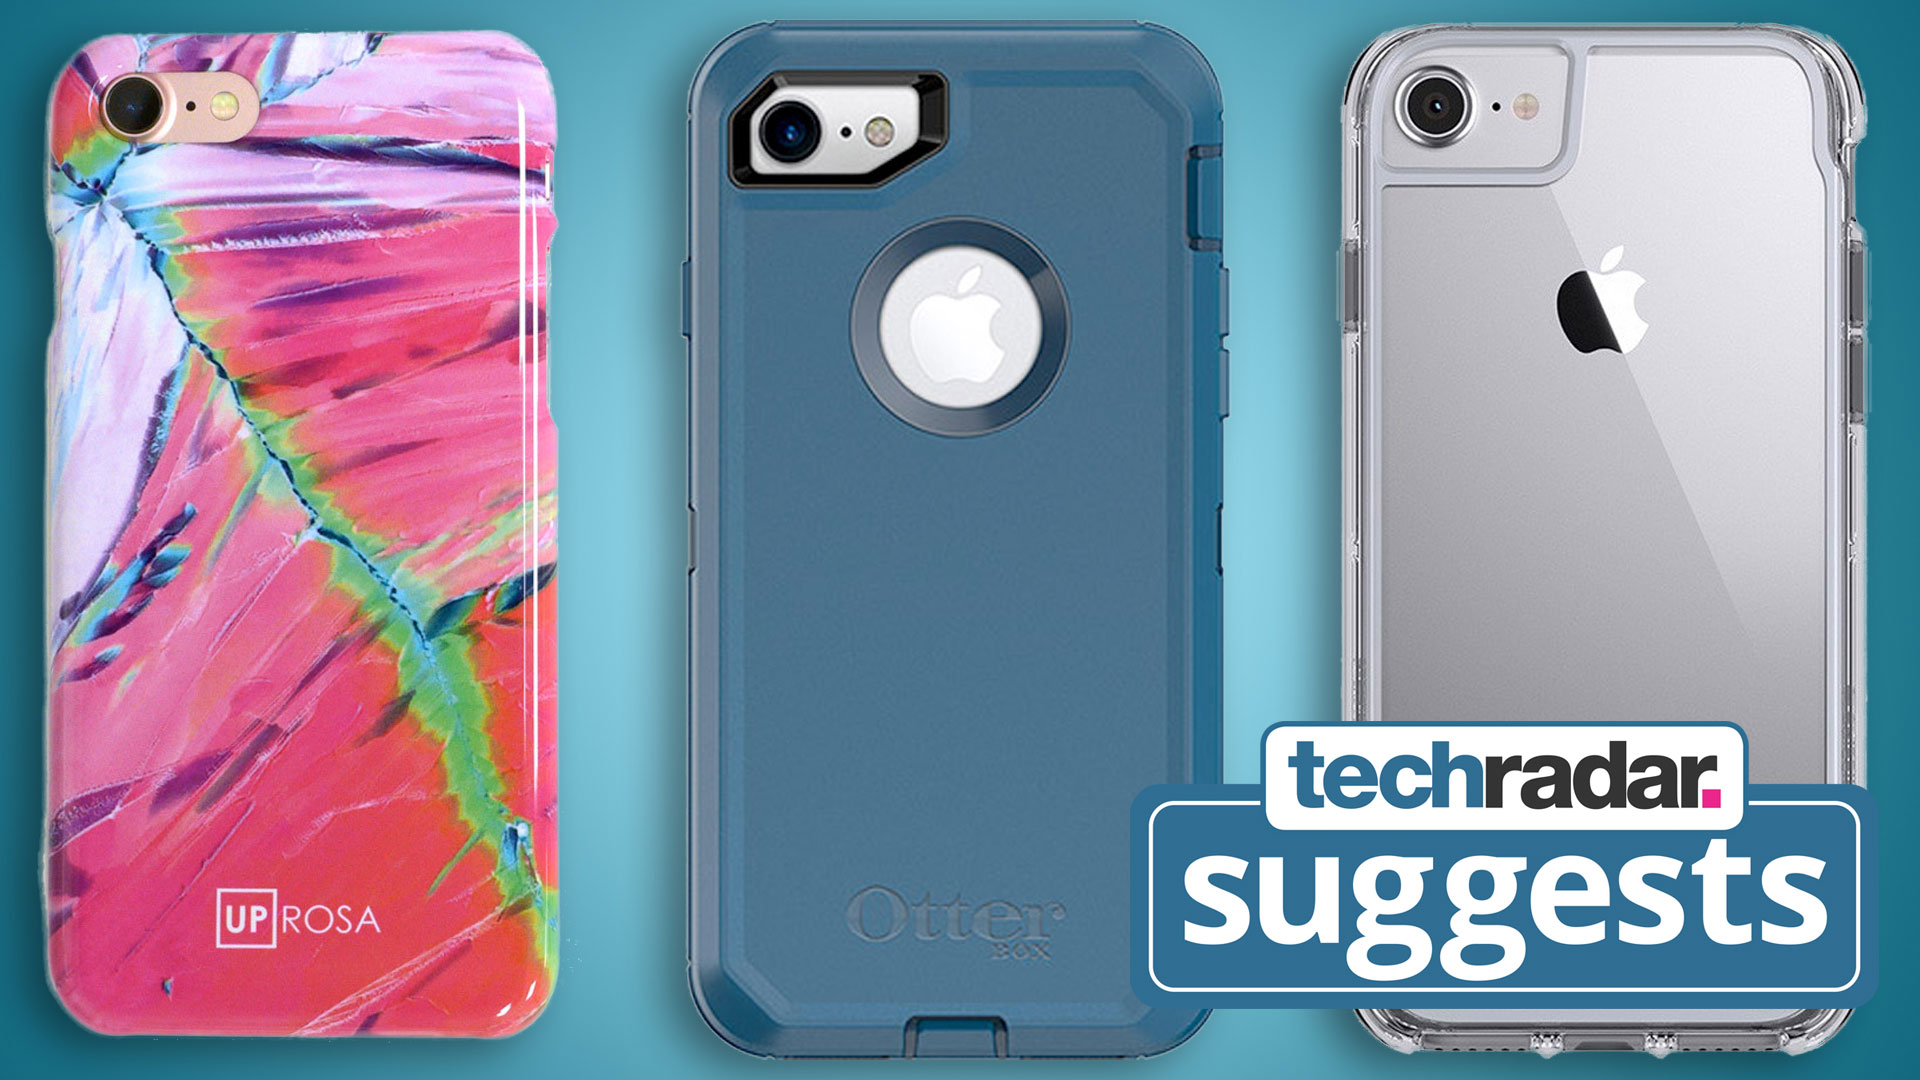 The best iPhone 7 cases | TechRadar